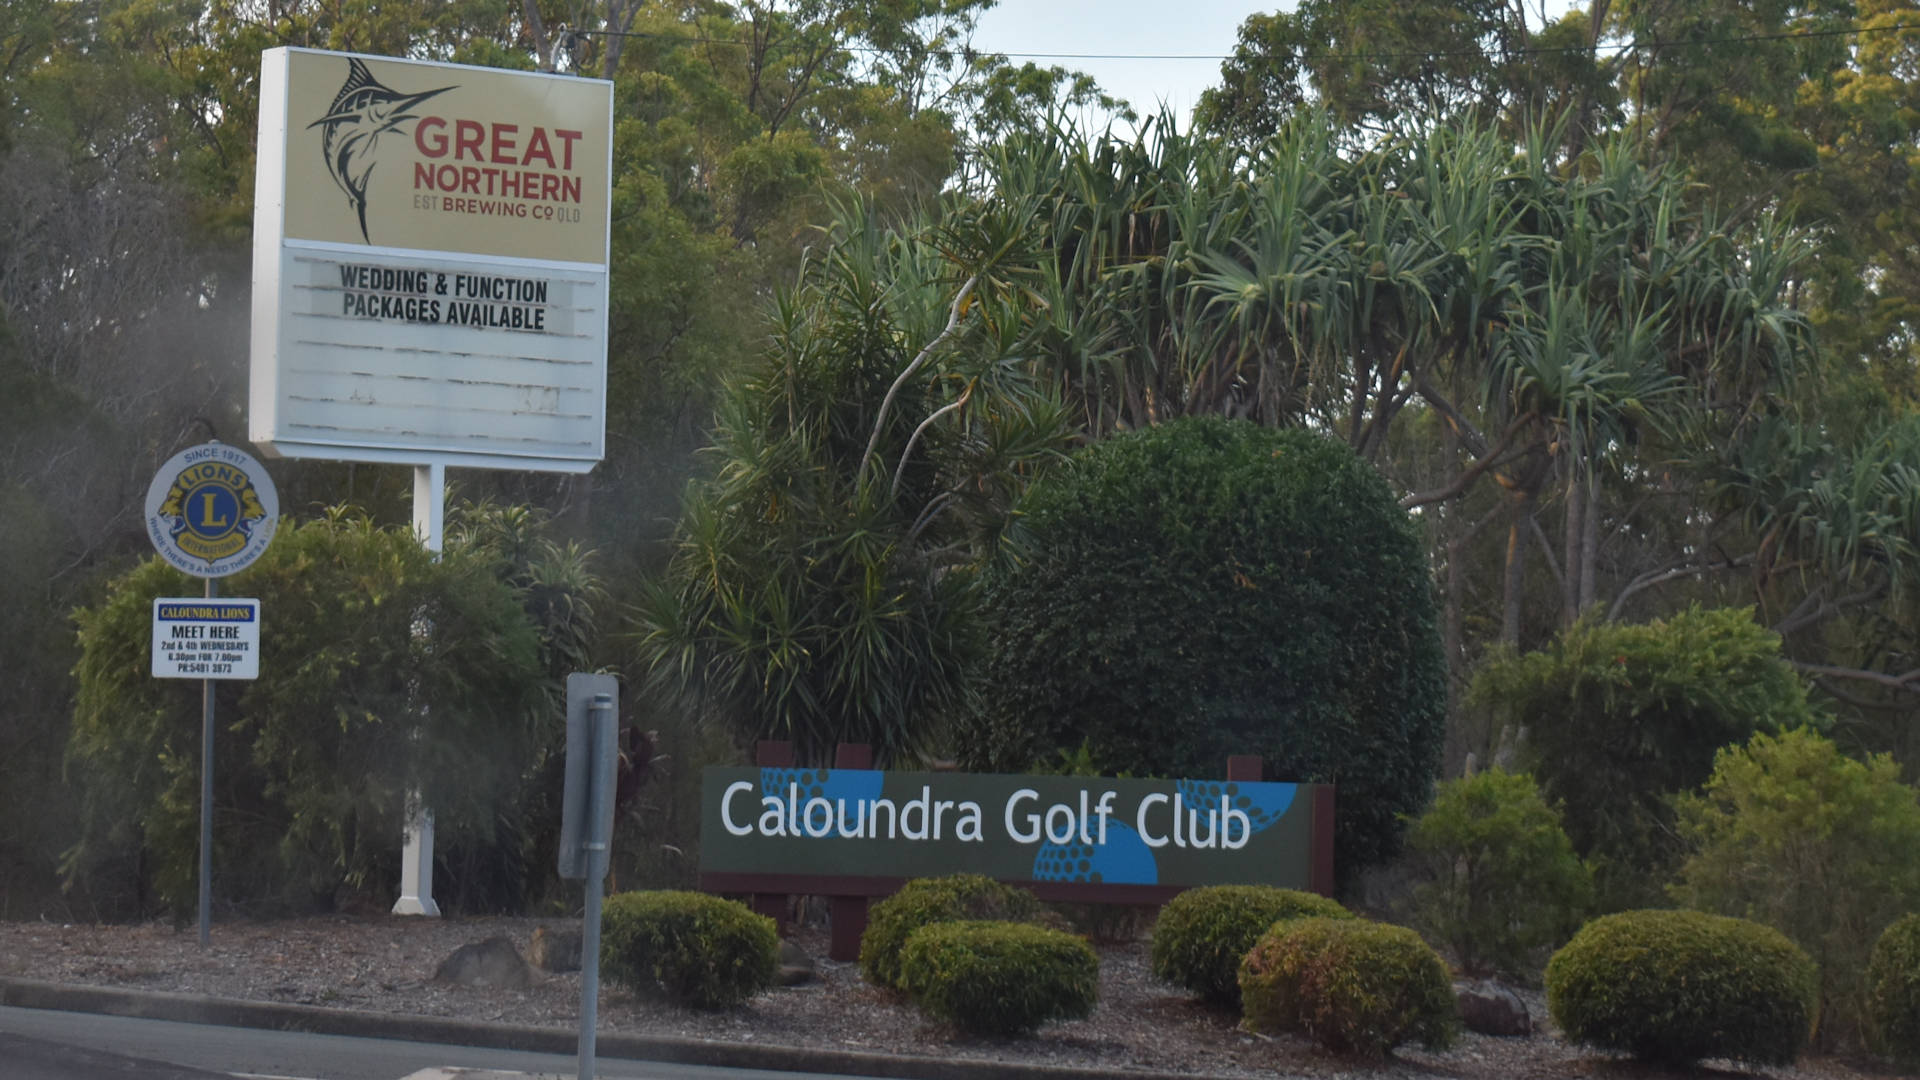 Caloundra Golf Club entrance sign